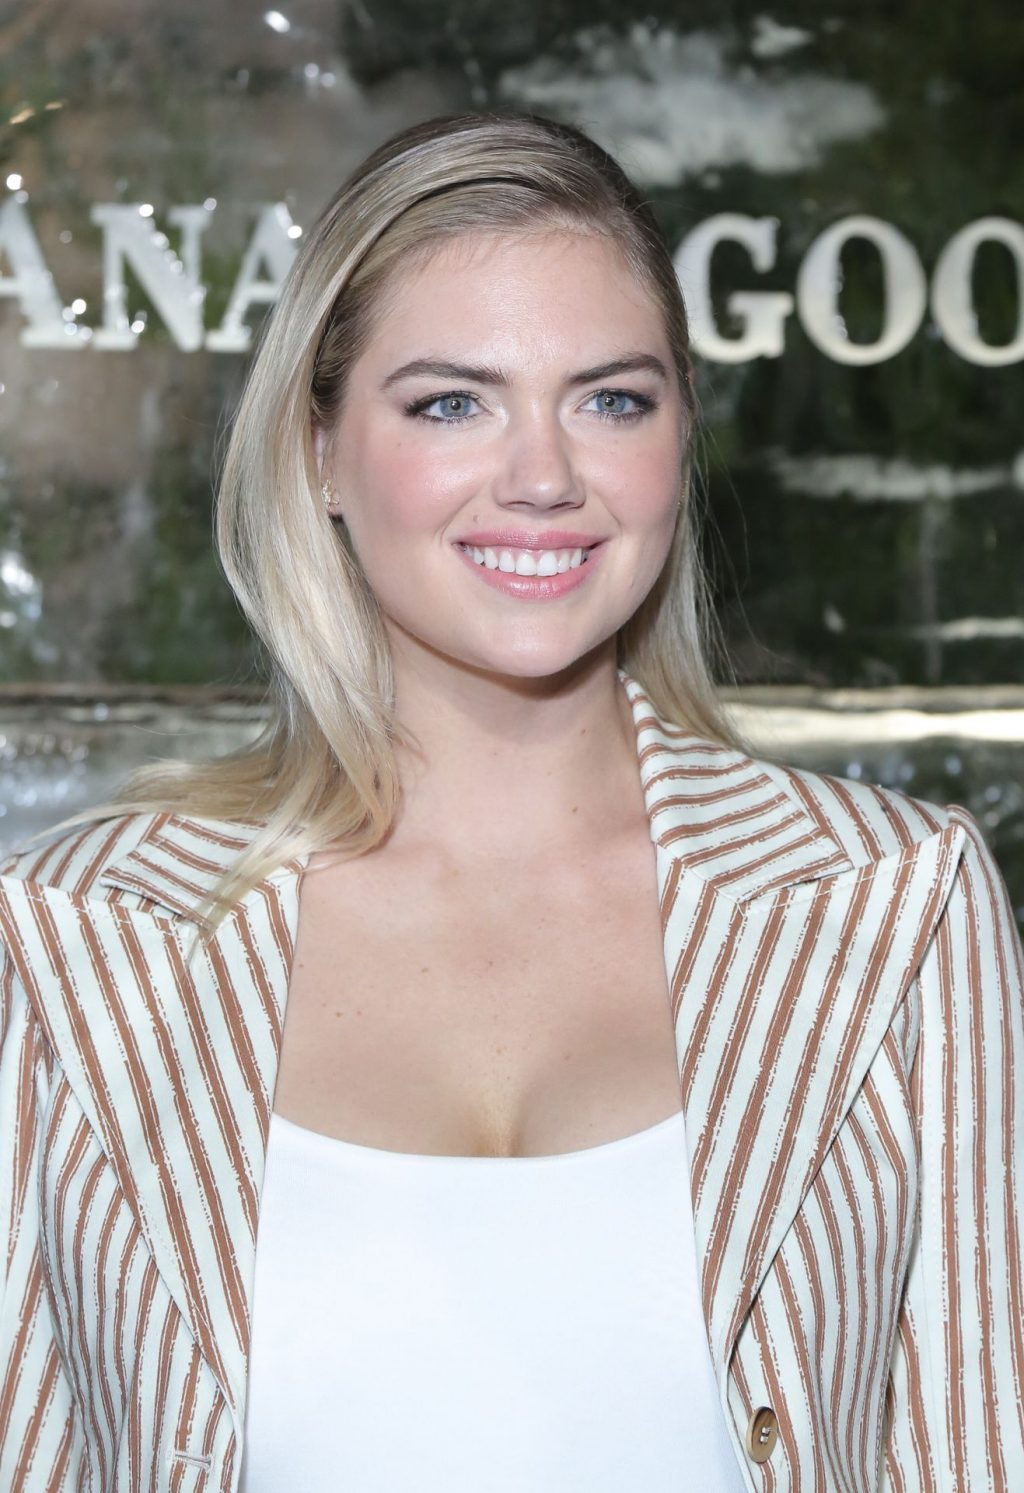 Kate Upton Sexy The Fappening Blog 53 1024x1493 - Kate Upton Attends Canada Goose And Vogue Cocktails & Conversations (104 Photos)